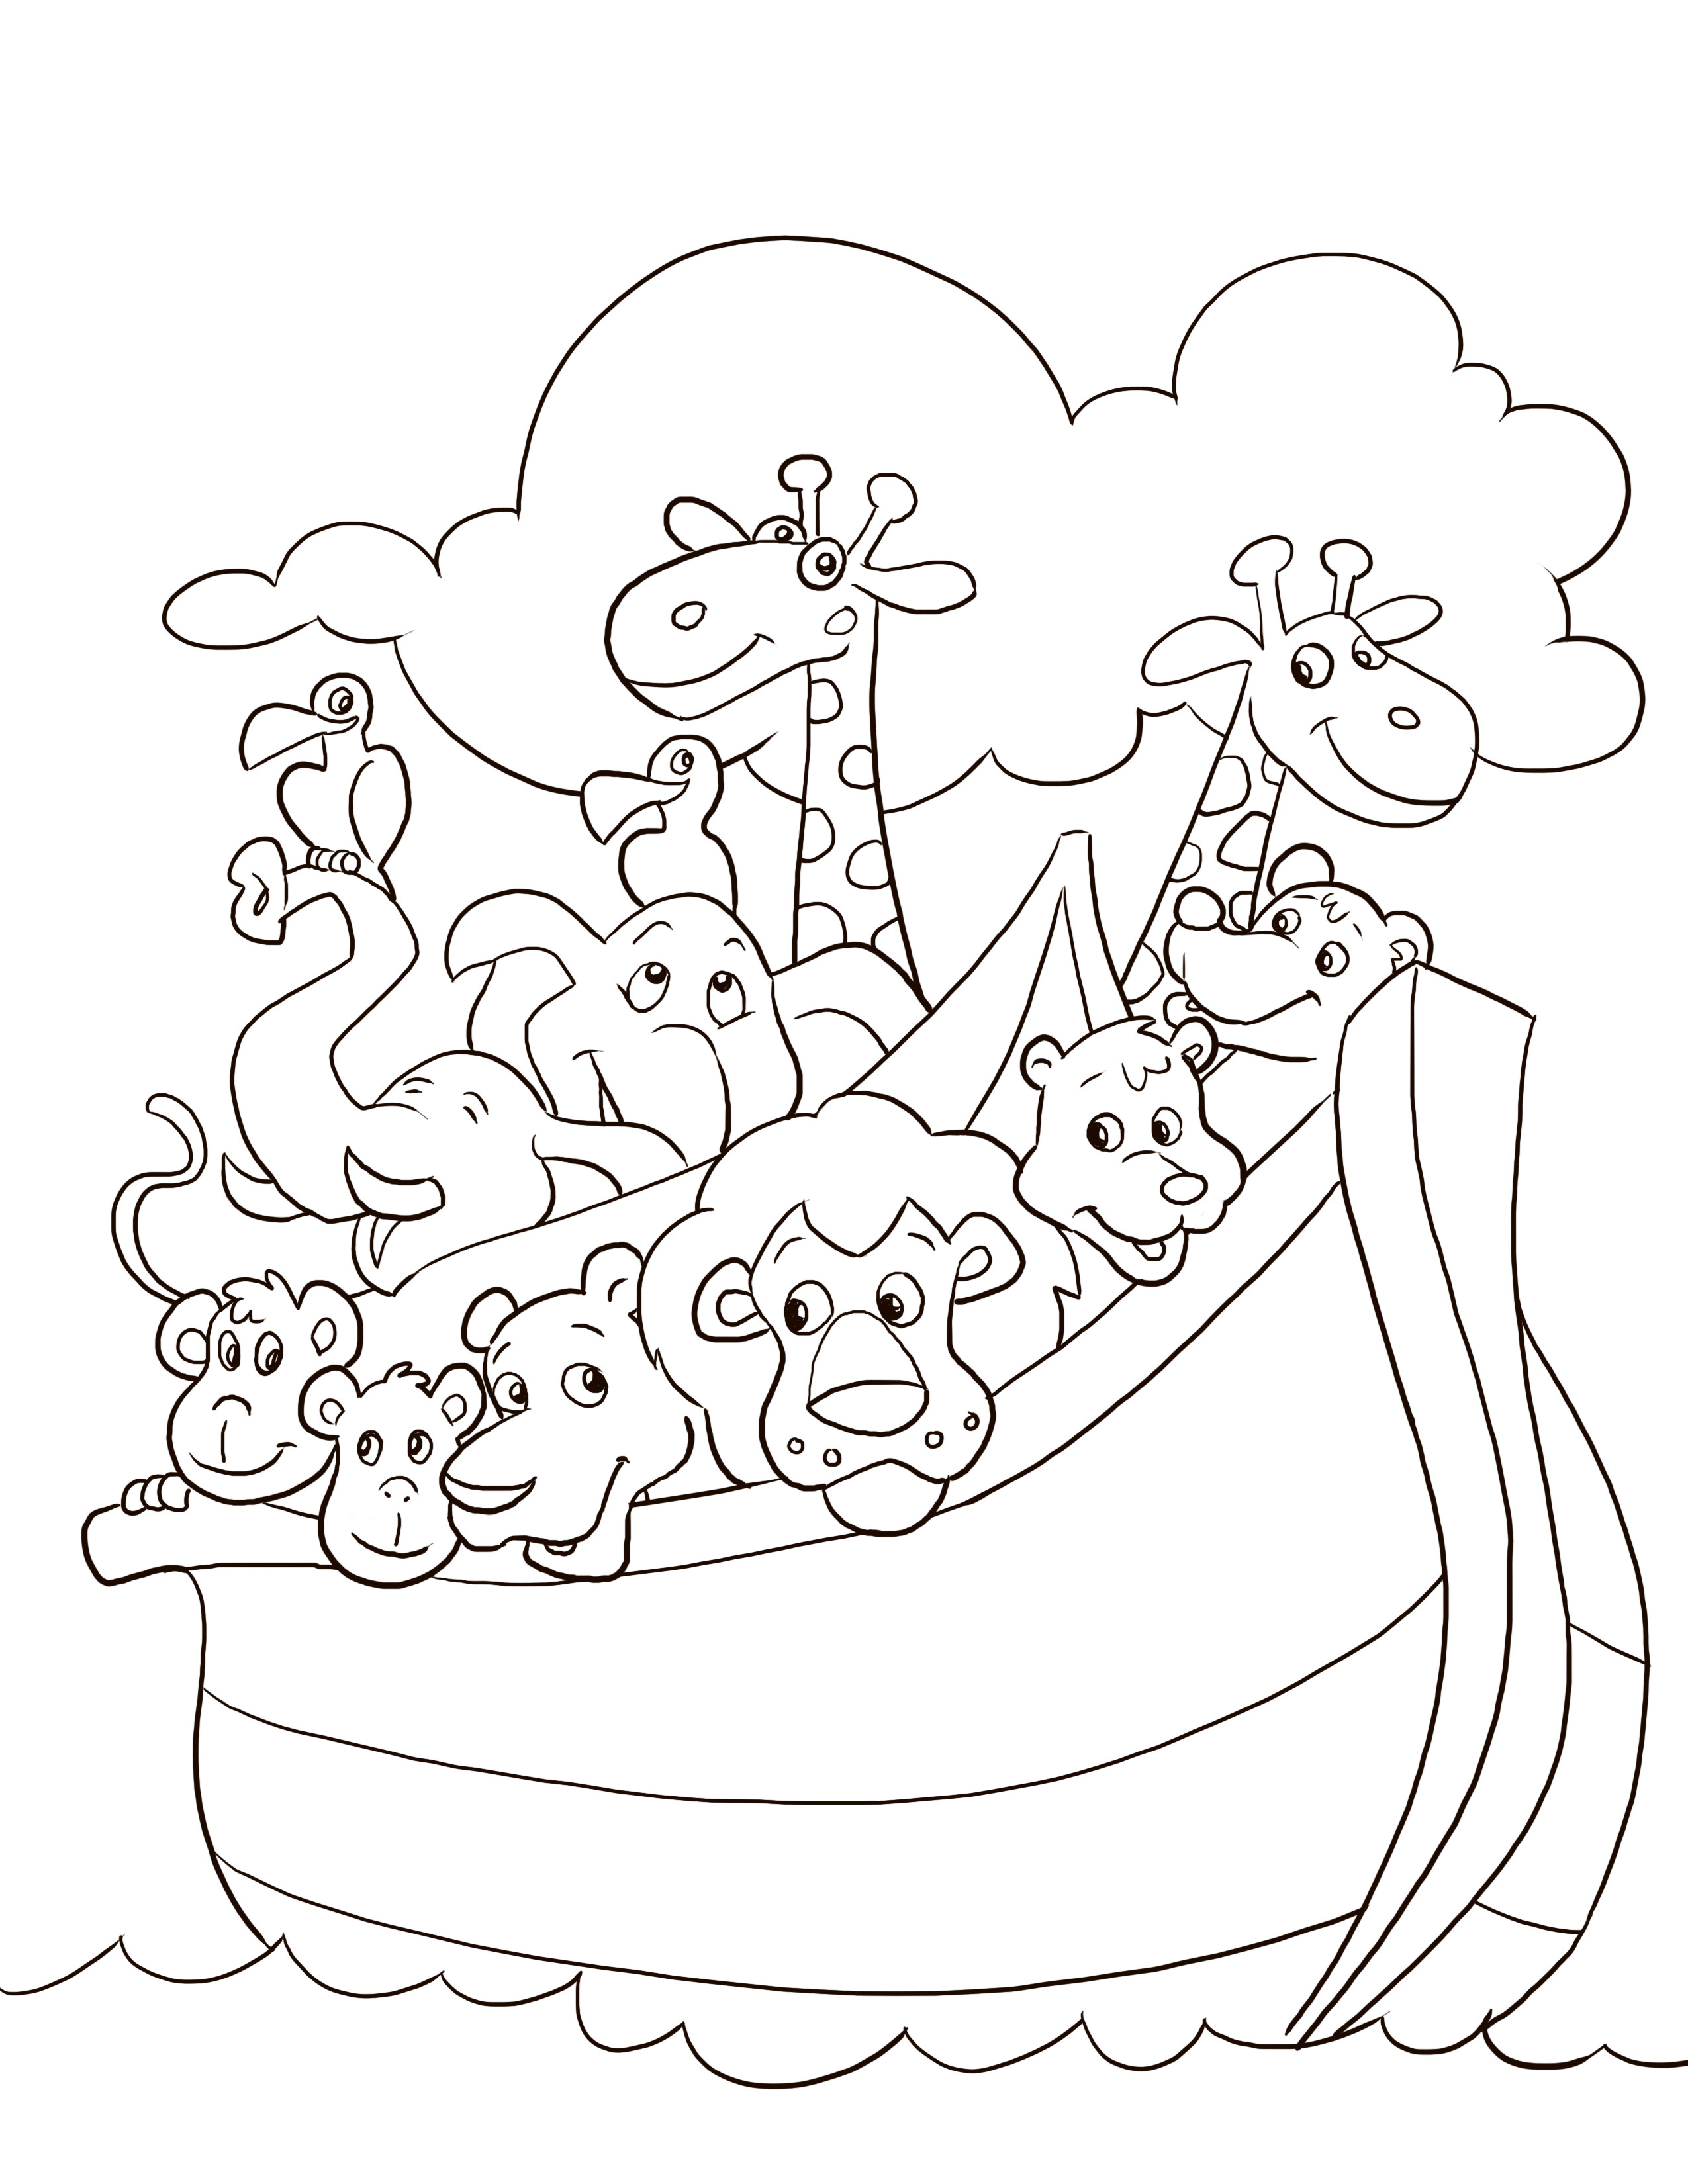 Coloring Book Pages Bible  Biblical Coloring Pages For Kids